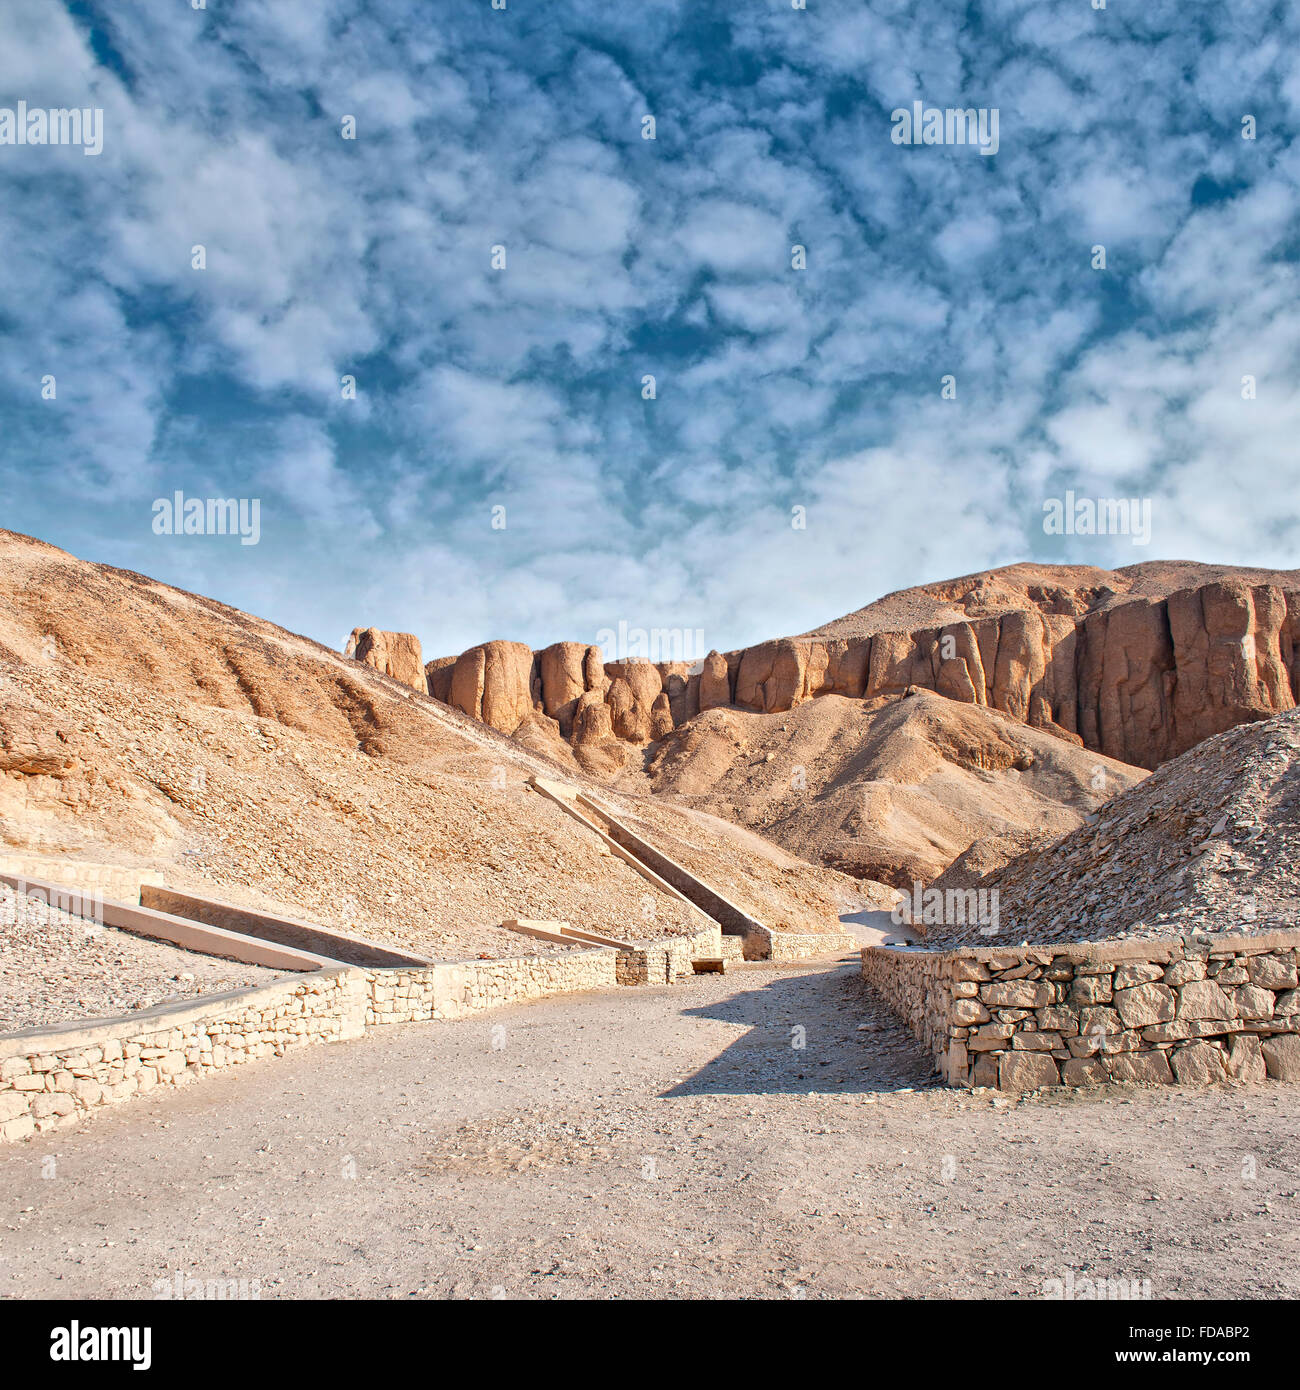 Image of the valley of the kings in Luxor, Egypt. - Stock Image